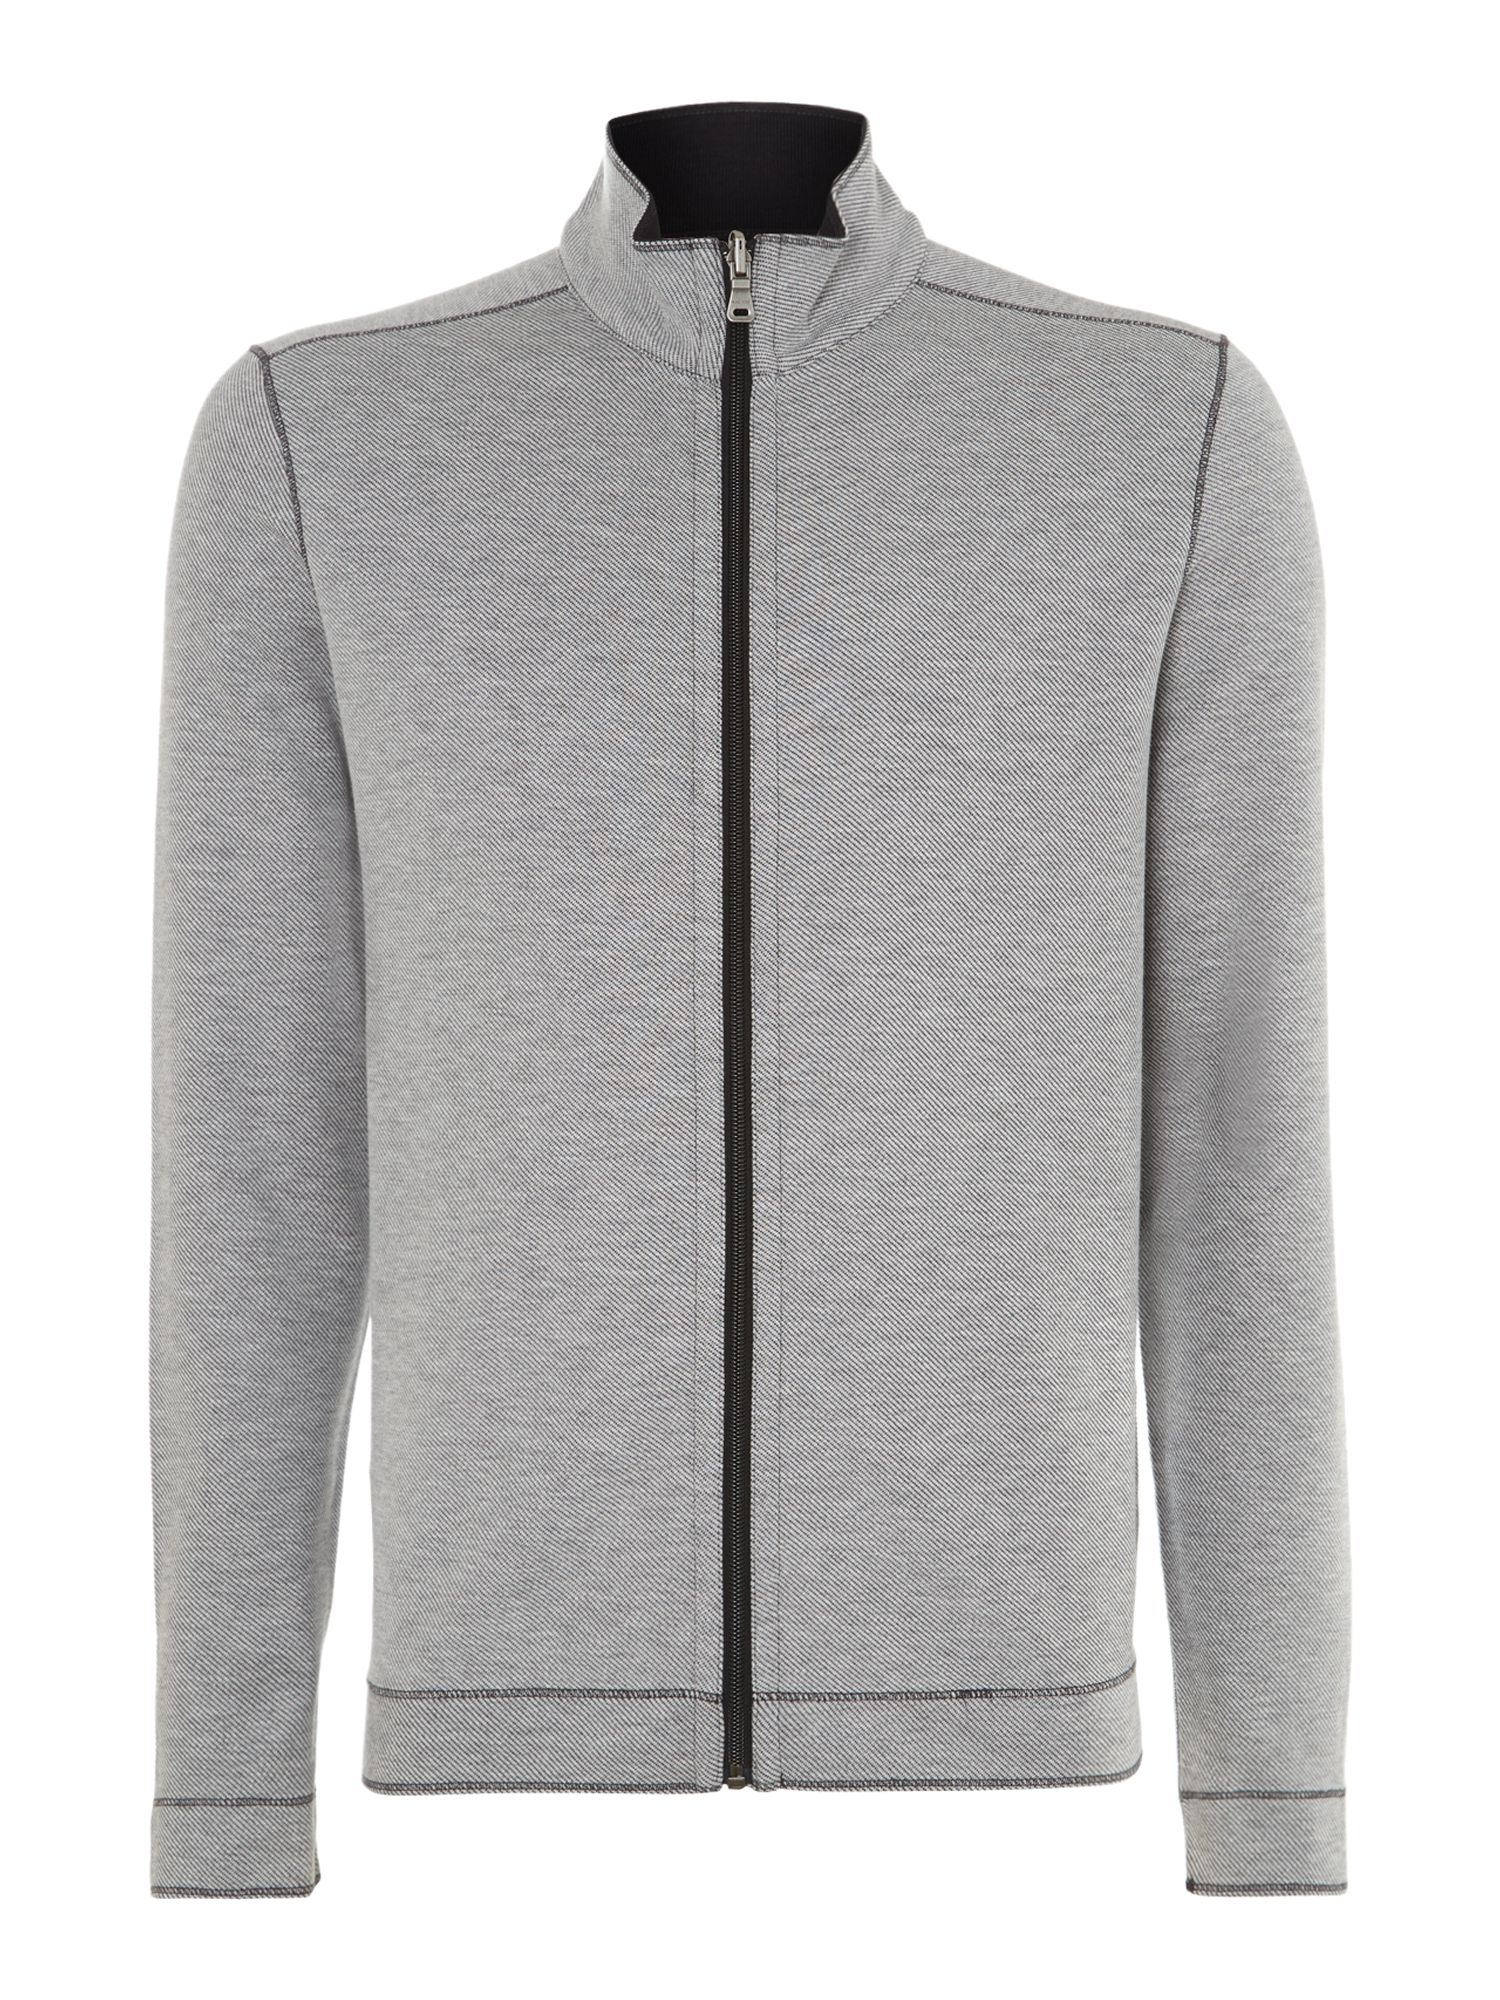 Pima cotton zip up sweatshirt